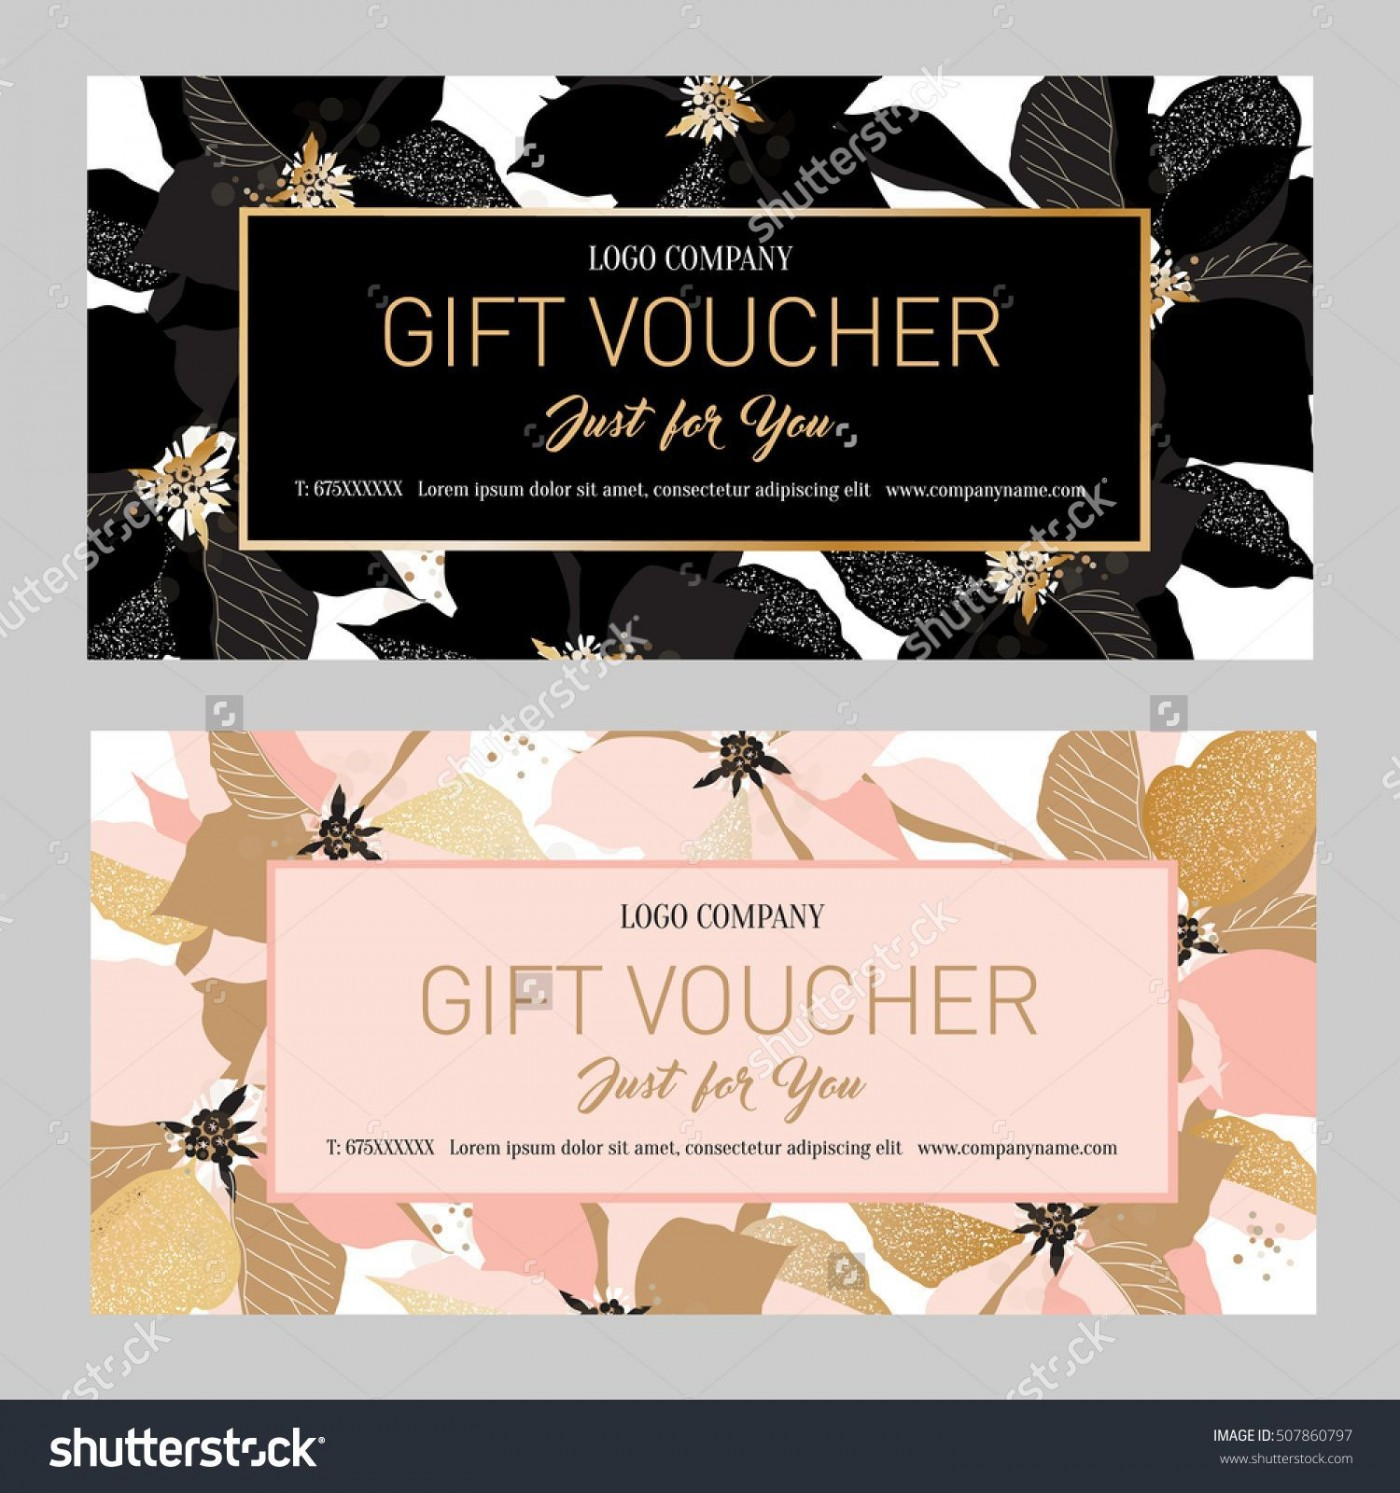 000 Fearsome Salon Gift Certificate Template Sample 1400